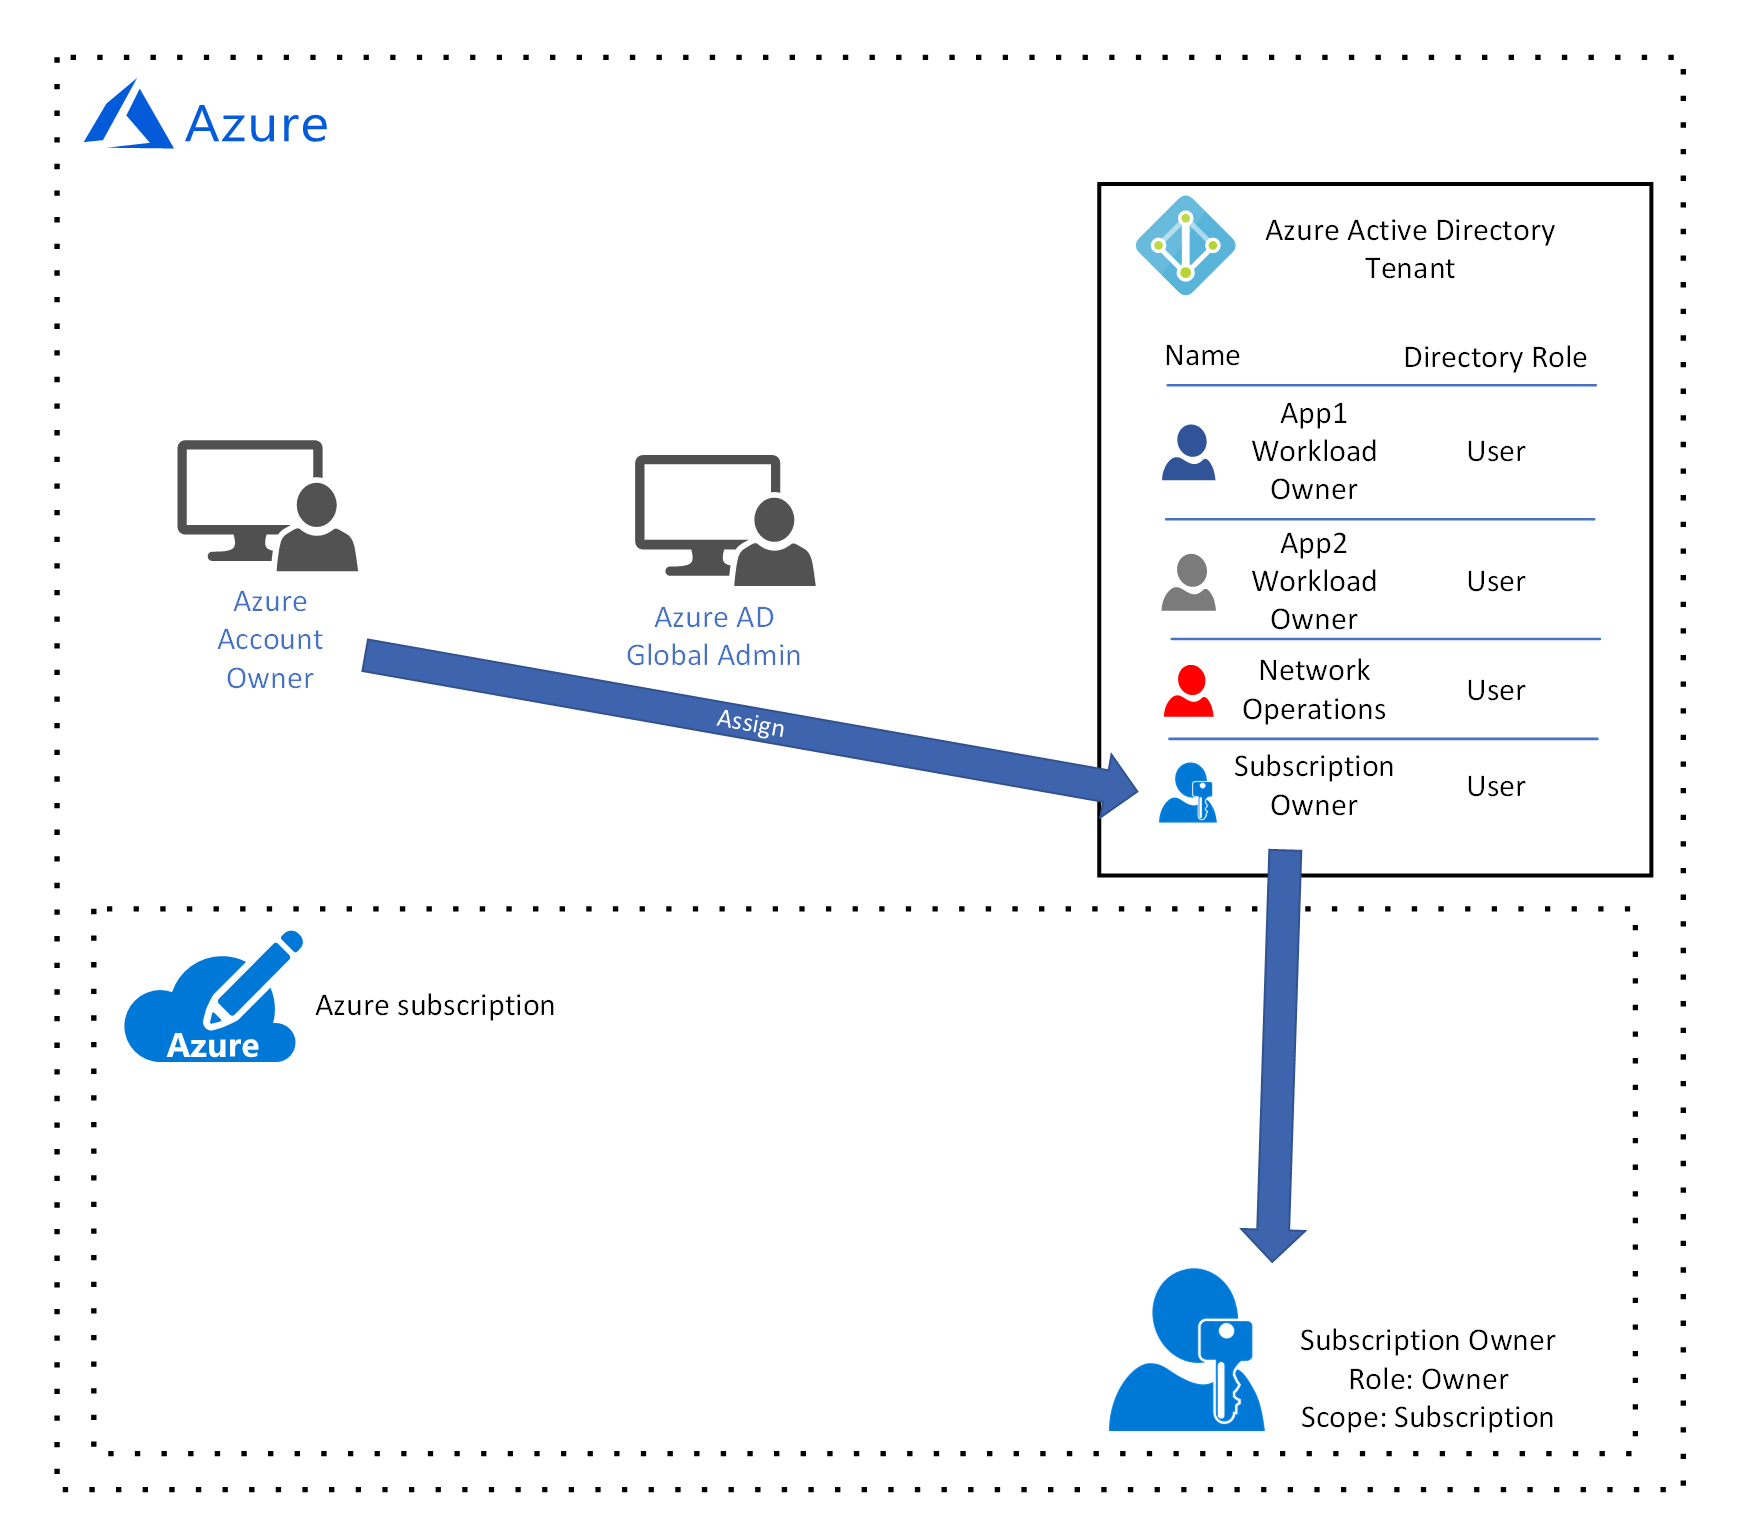 Figure 7 The Azure Account Owner adds the subscription owner user account to the subscription with the owner role